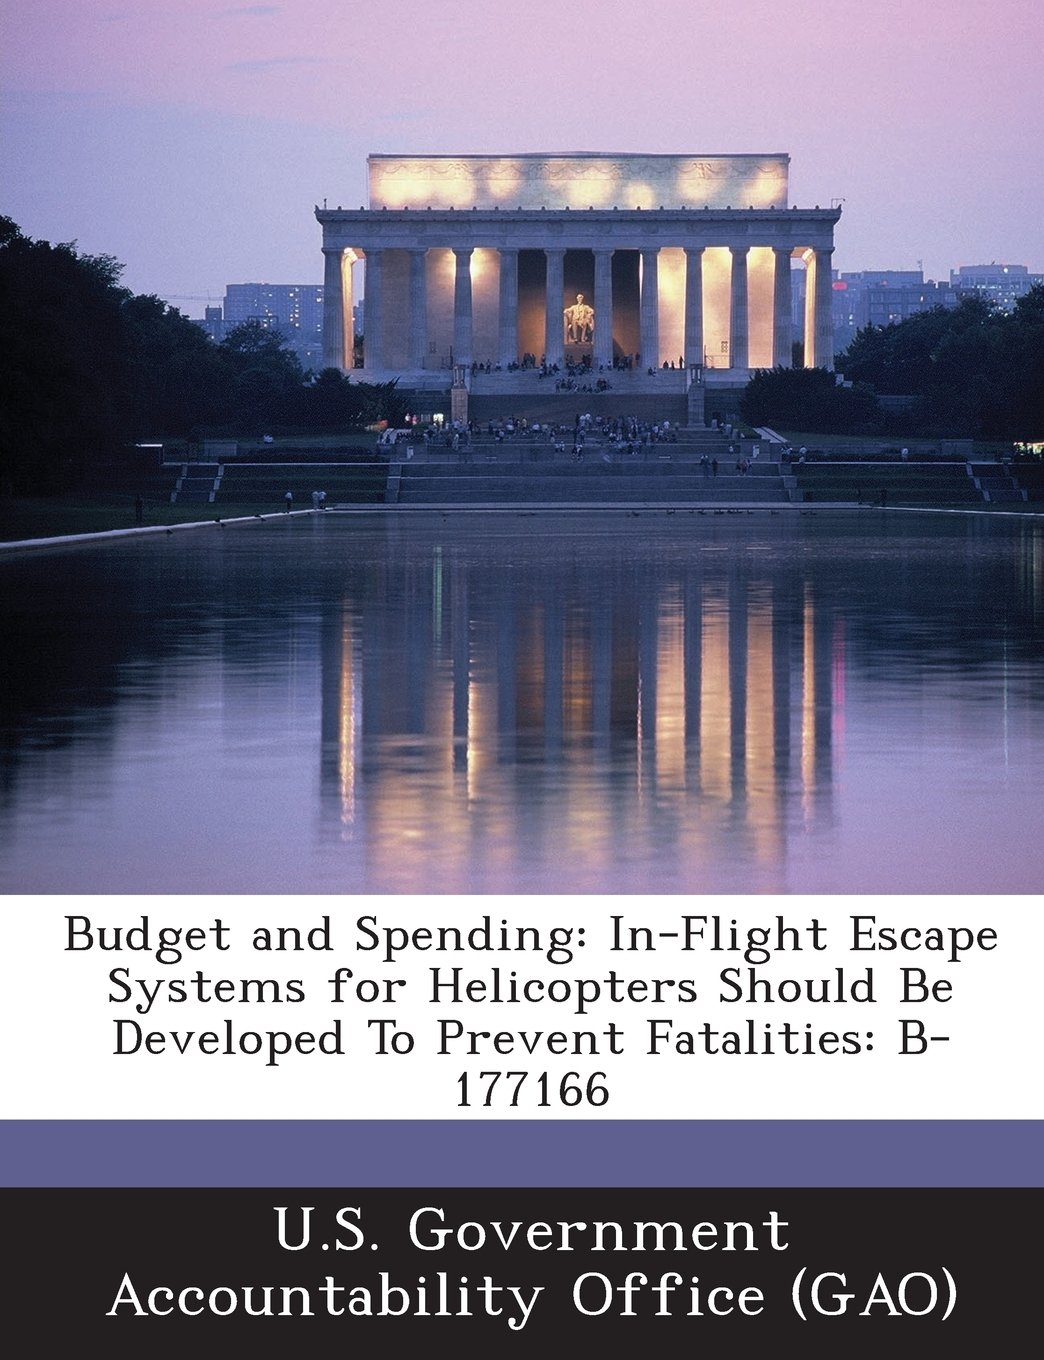 Download Budget and Spending: In-Flight Escape Systems for Helicopters Should Be Developed to Prevent Fatalities: B-177166 PDF